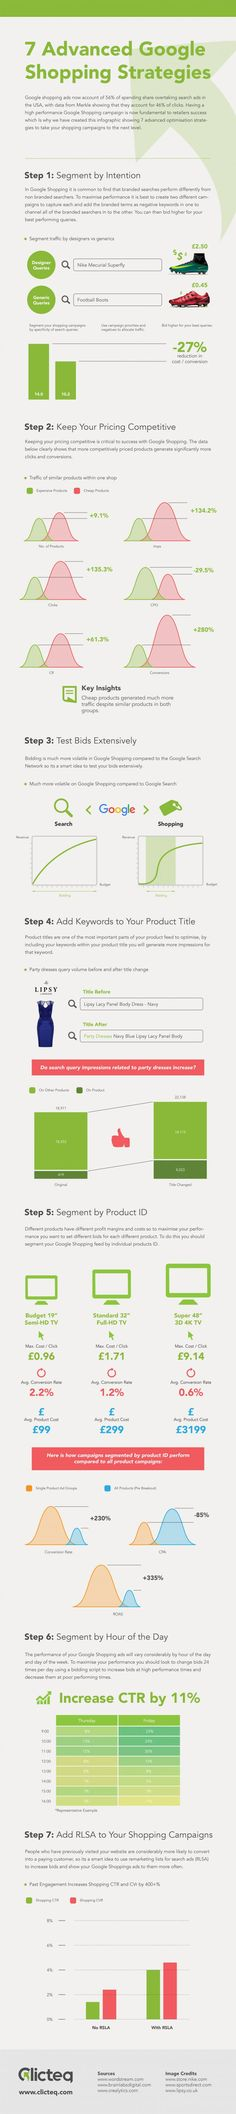 199 Best eCommerce & eShopping infographics images in 2019